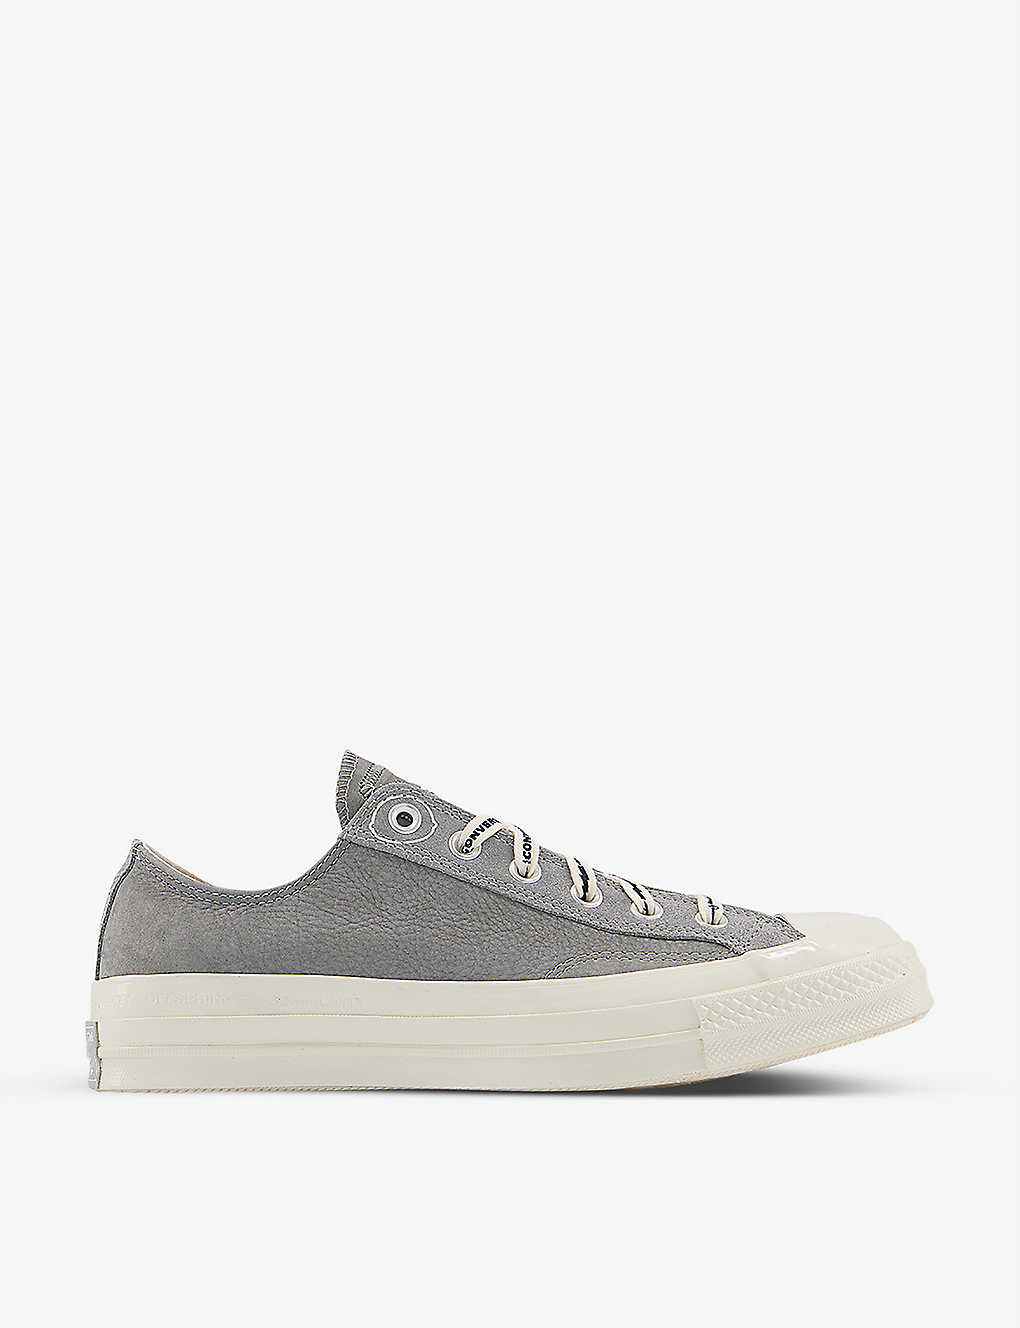 CONVERSE: Converse x Offspring All Star Ox 70's low-top suede trainers